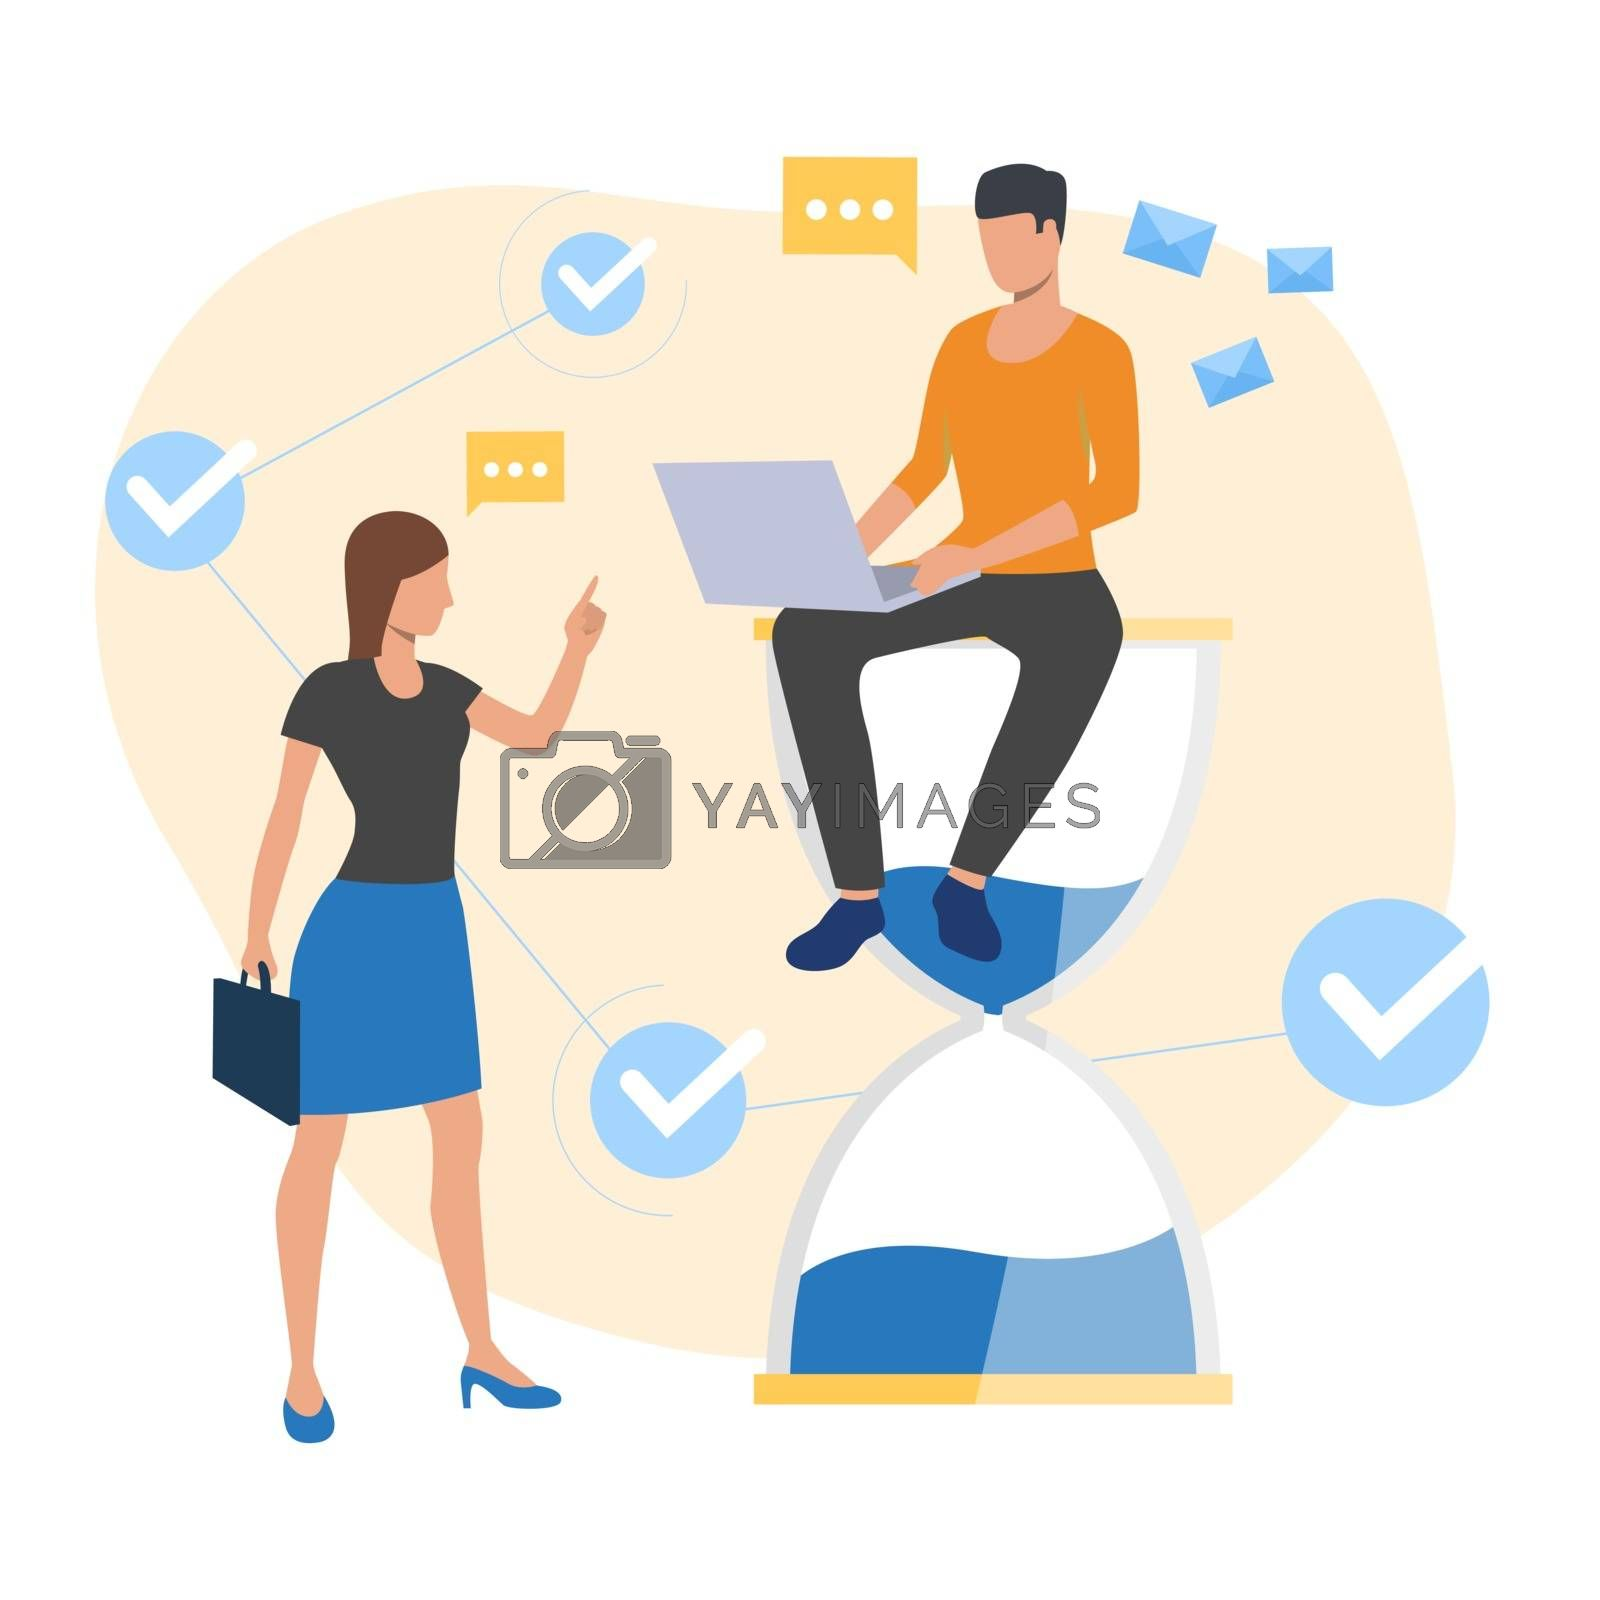 Employee sitting on sandglass and working. Computer, boss, customer. Time concept. Vector illustration for topics like time management, deadline, communication